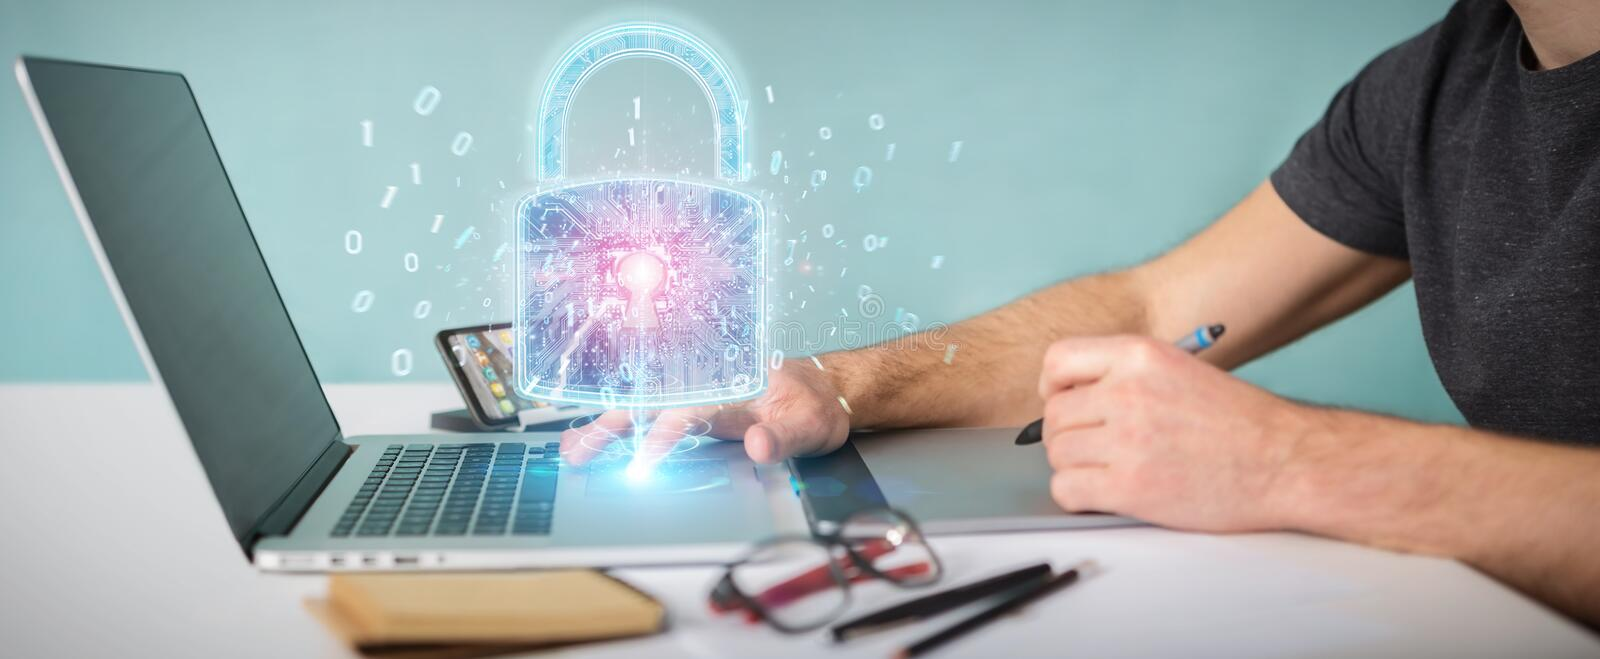 Web security protection interface used by graphic designer 3D rendering. Web security protection interface used by graphic designer in office 3D rendering stock illustration